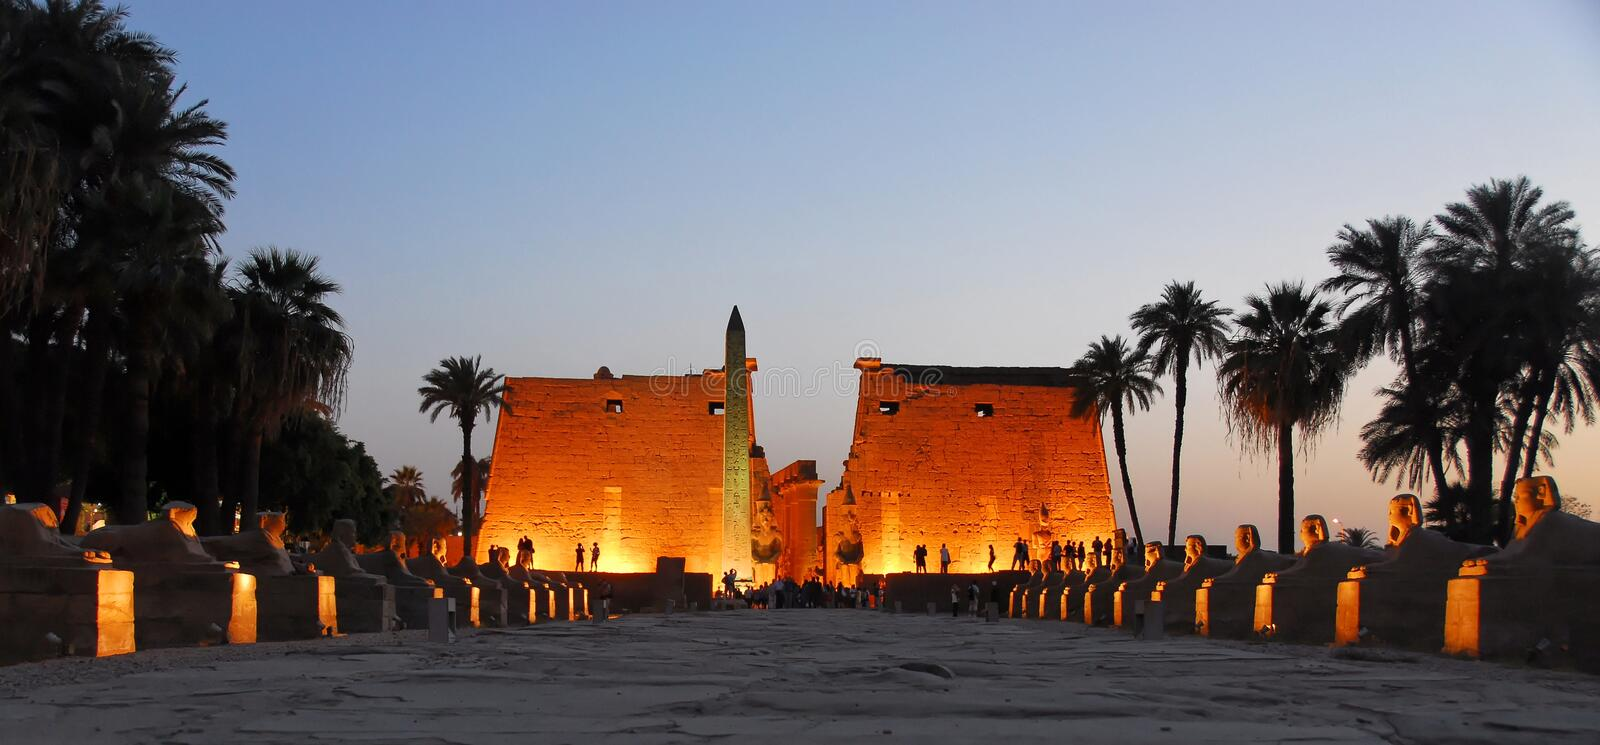 Luxor Temple at night. Luxor Temple is a large Ancient Egyptian temple complex located on the east bank of the Nile River in the city today known as Luxor ( royalty free stock photos